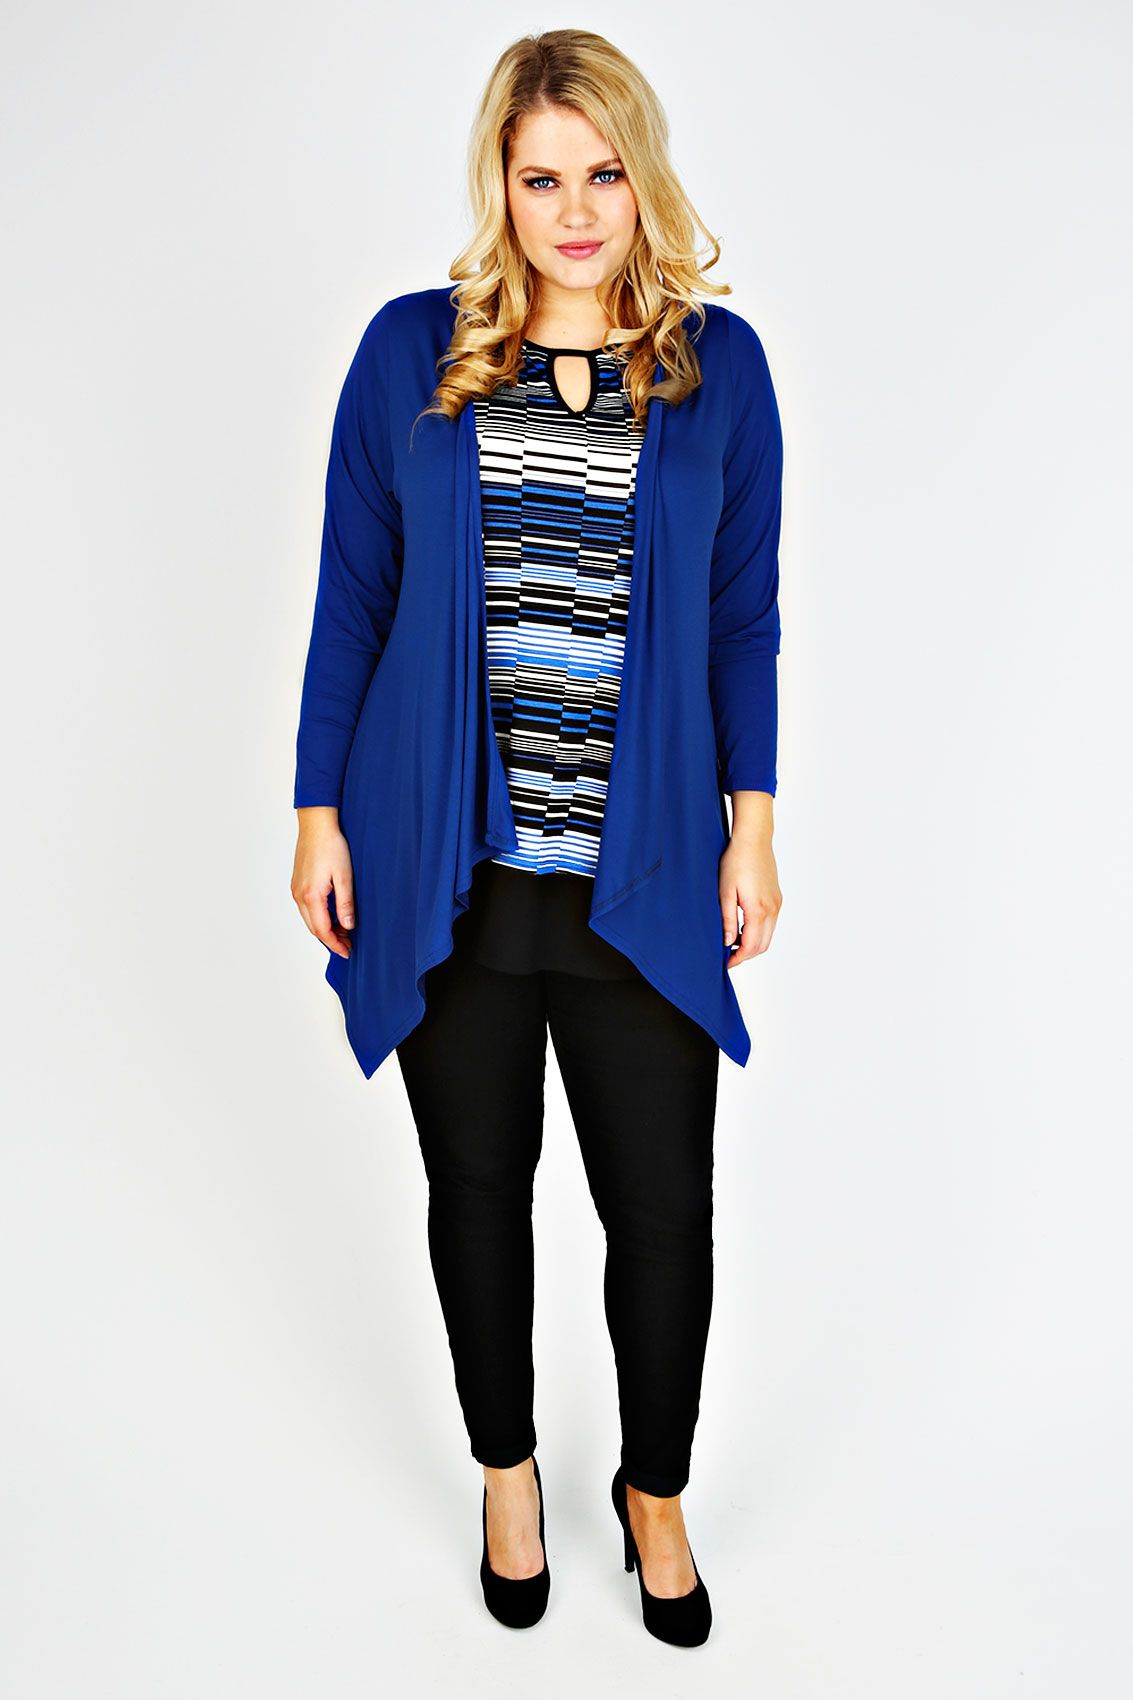 Cobalt Blue Waterfall Edge to Edge Jersey Cardigan | Cobalt blue ...